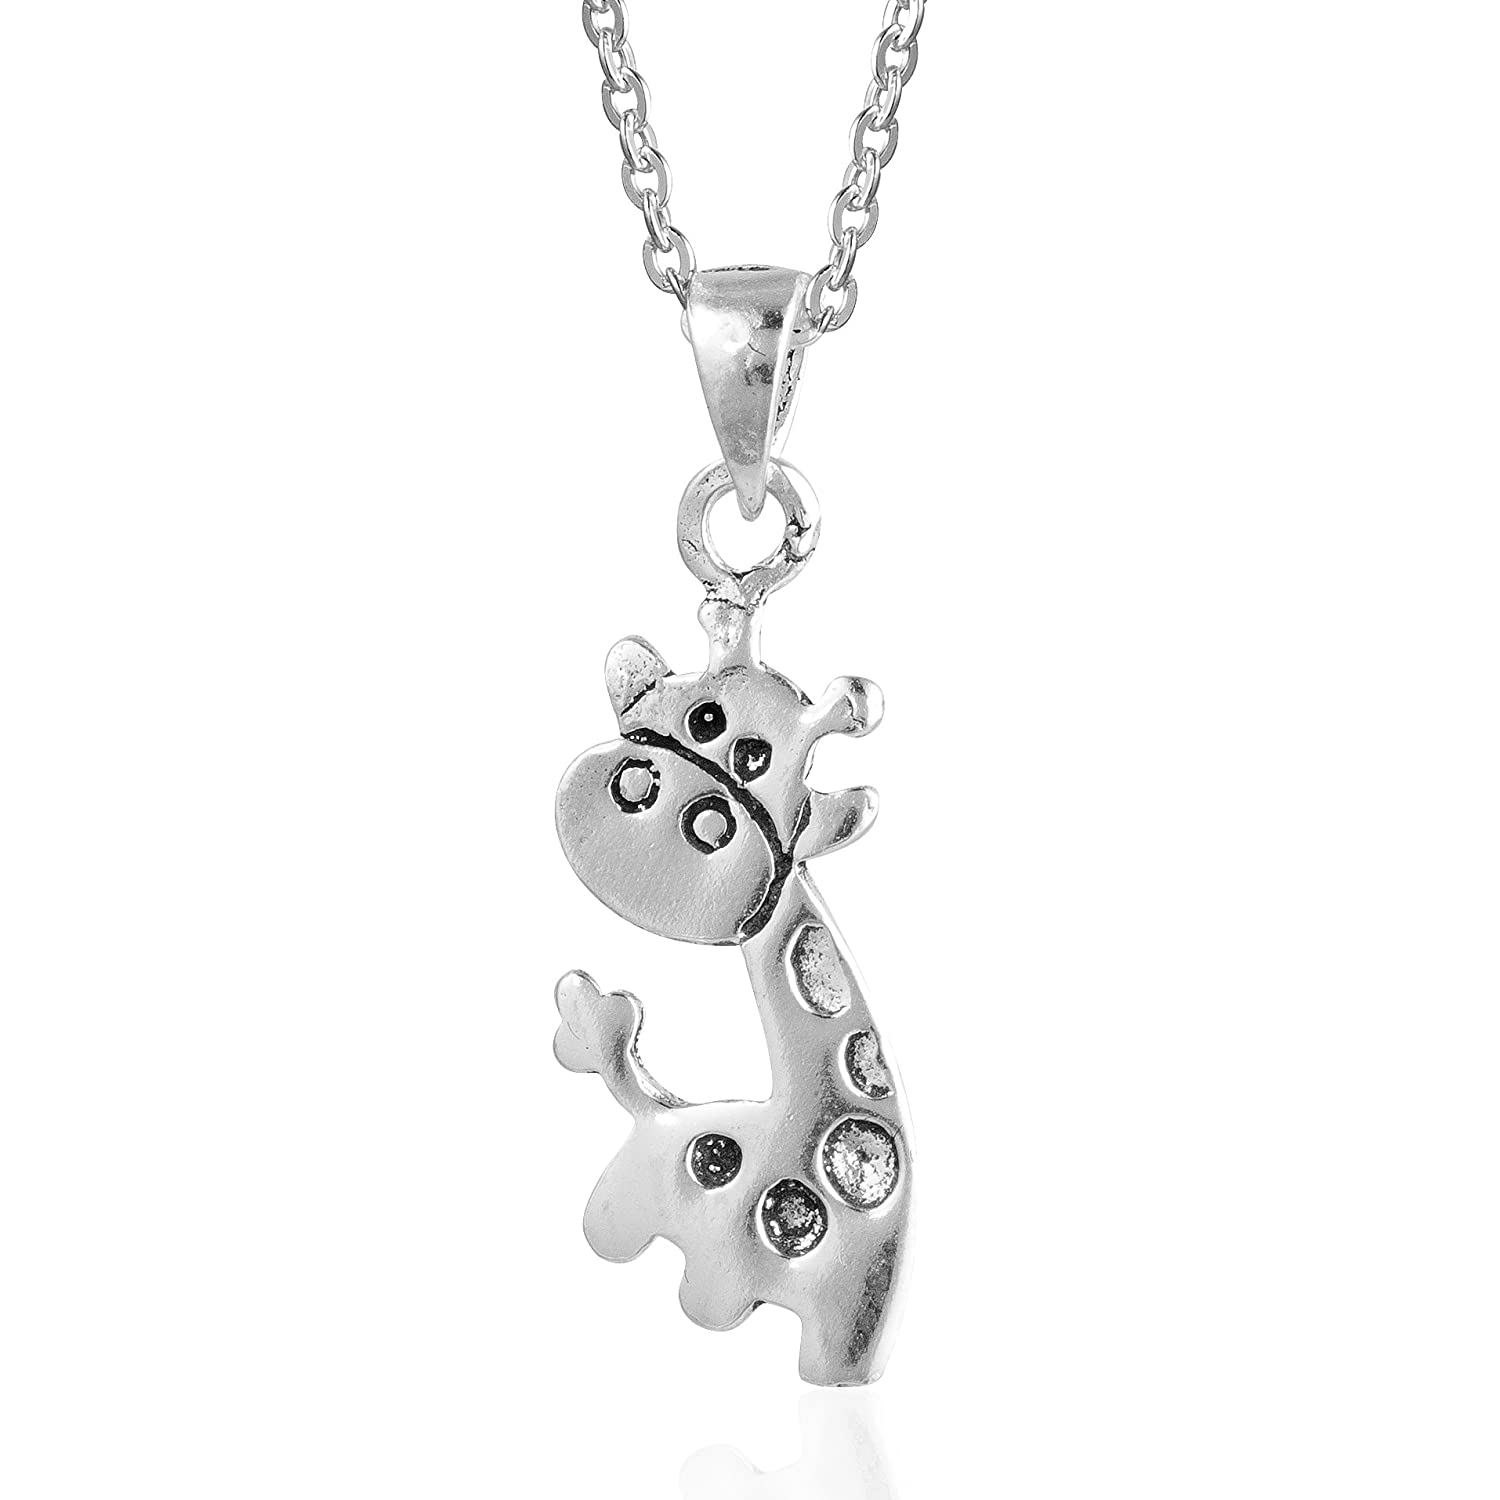 silver image giraffe beck pendant shop k plated product of gold necklace sterling anna